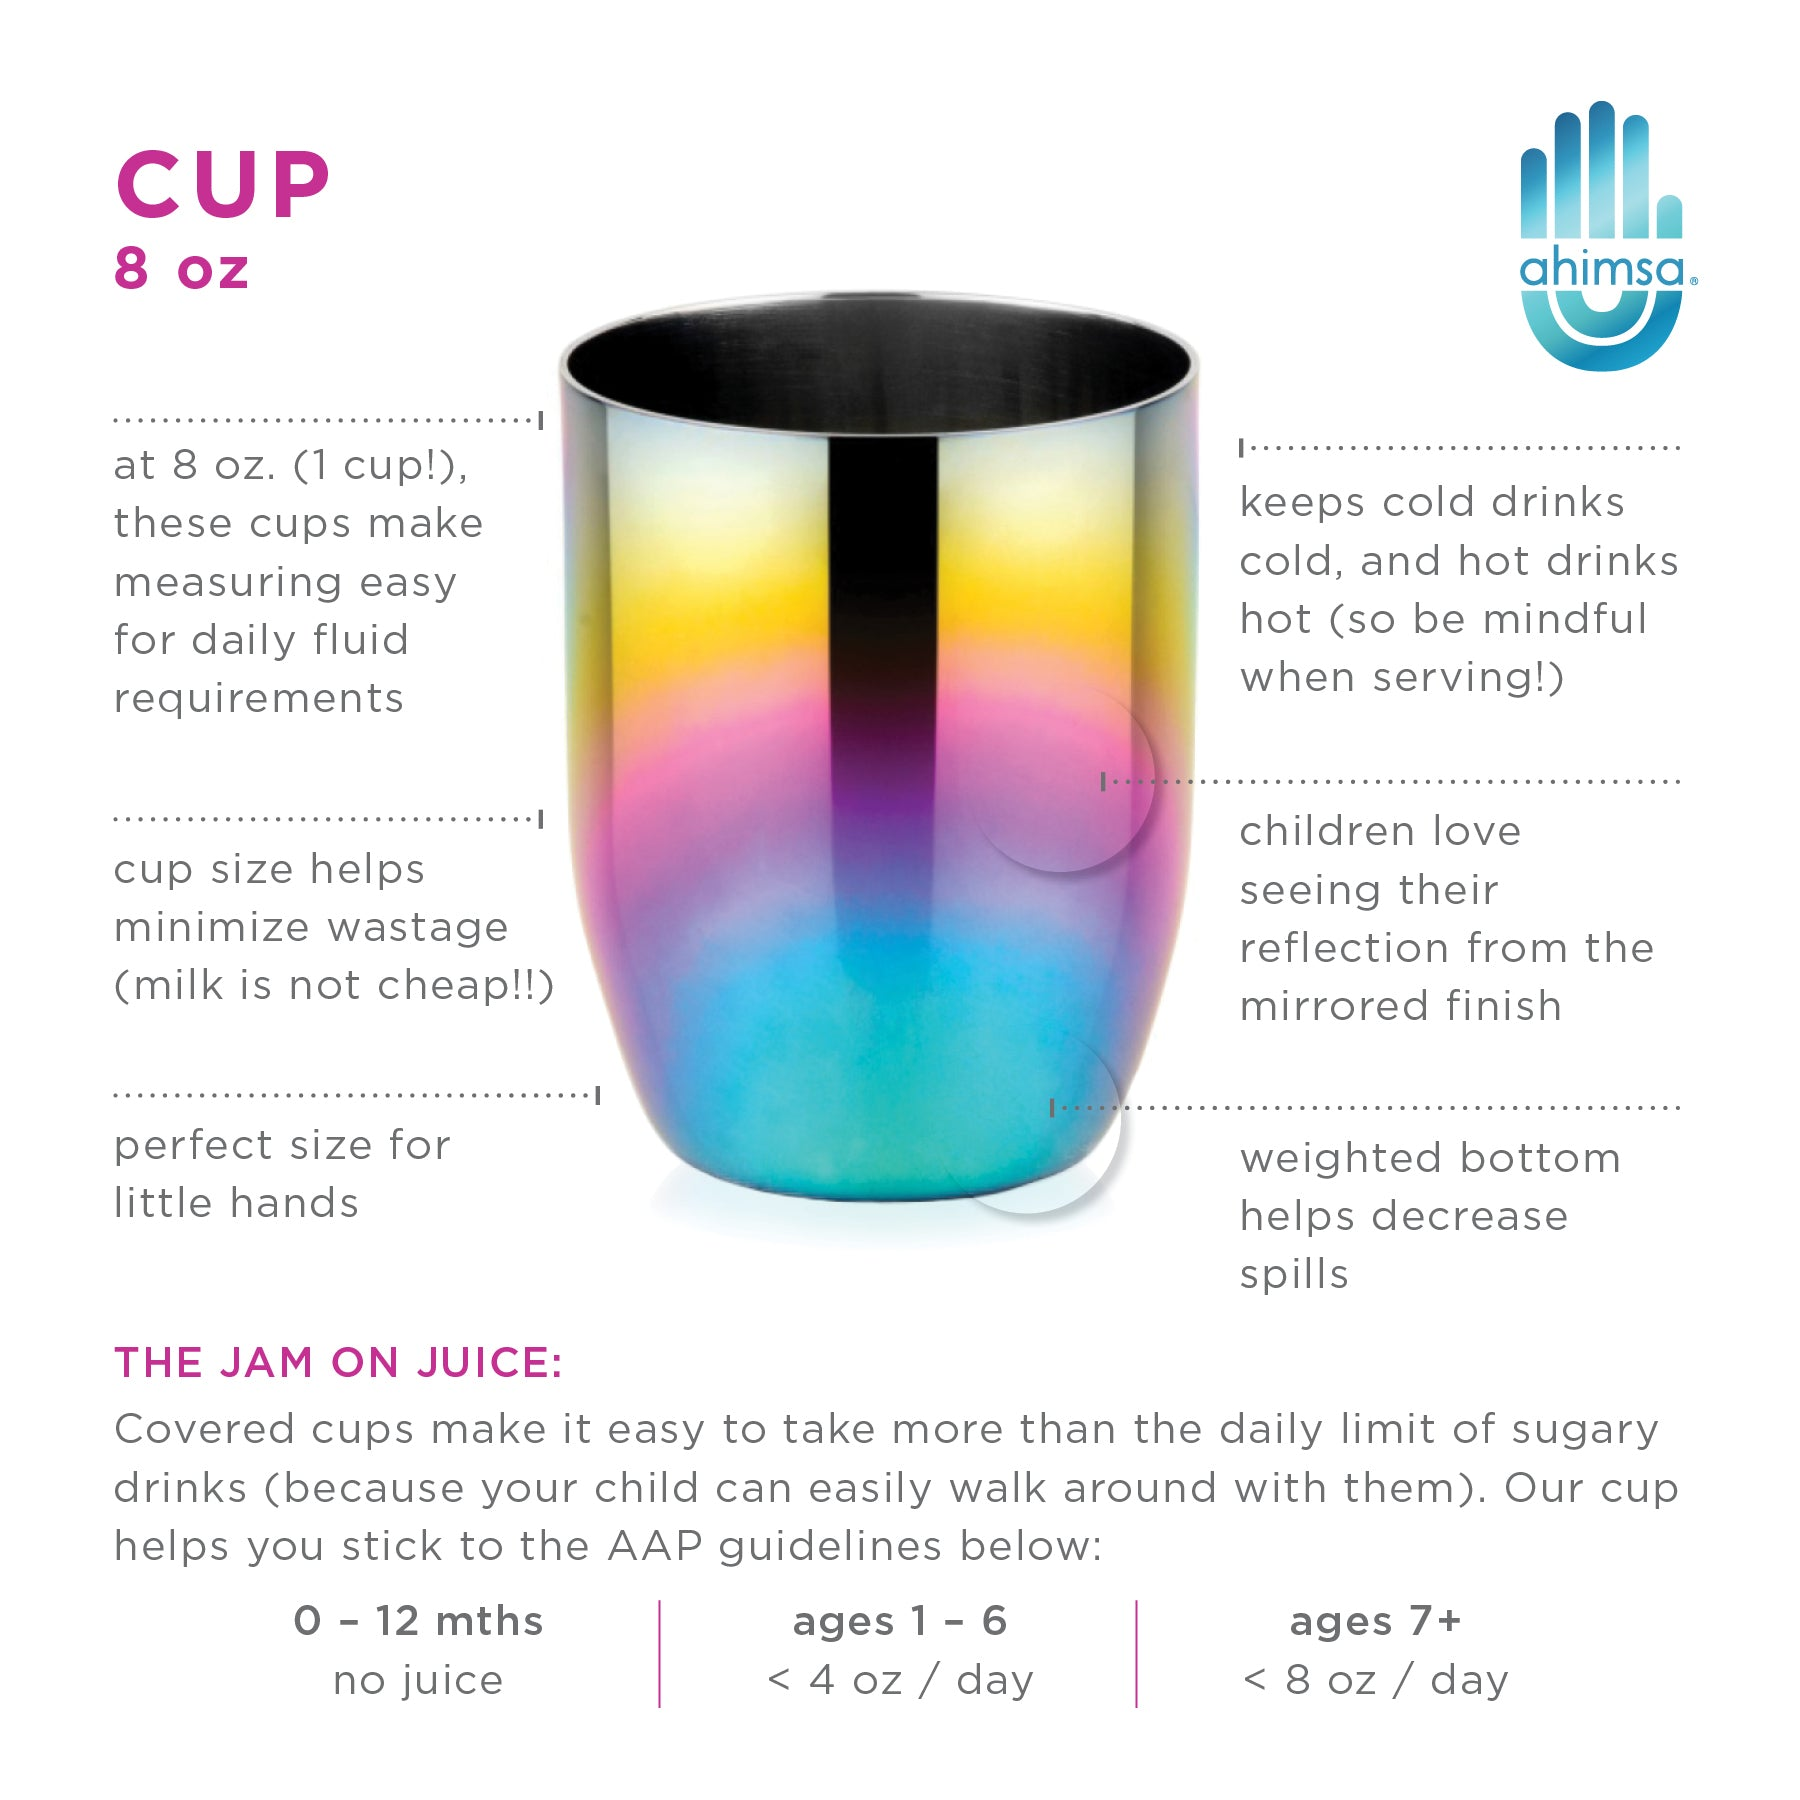 Perfect sized kids cup for small hands, reducing waste and mess